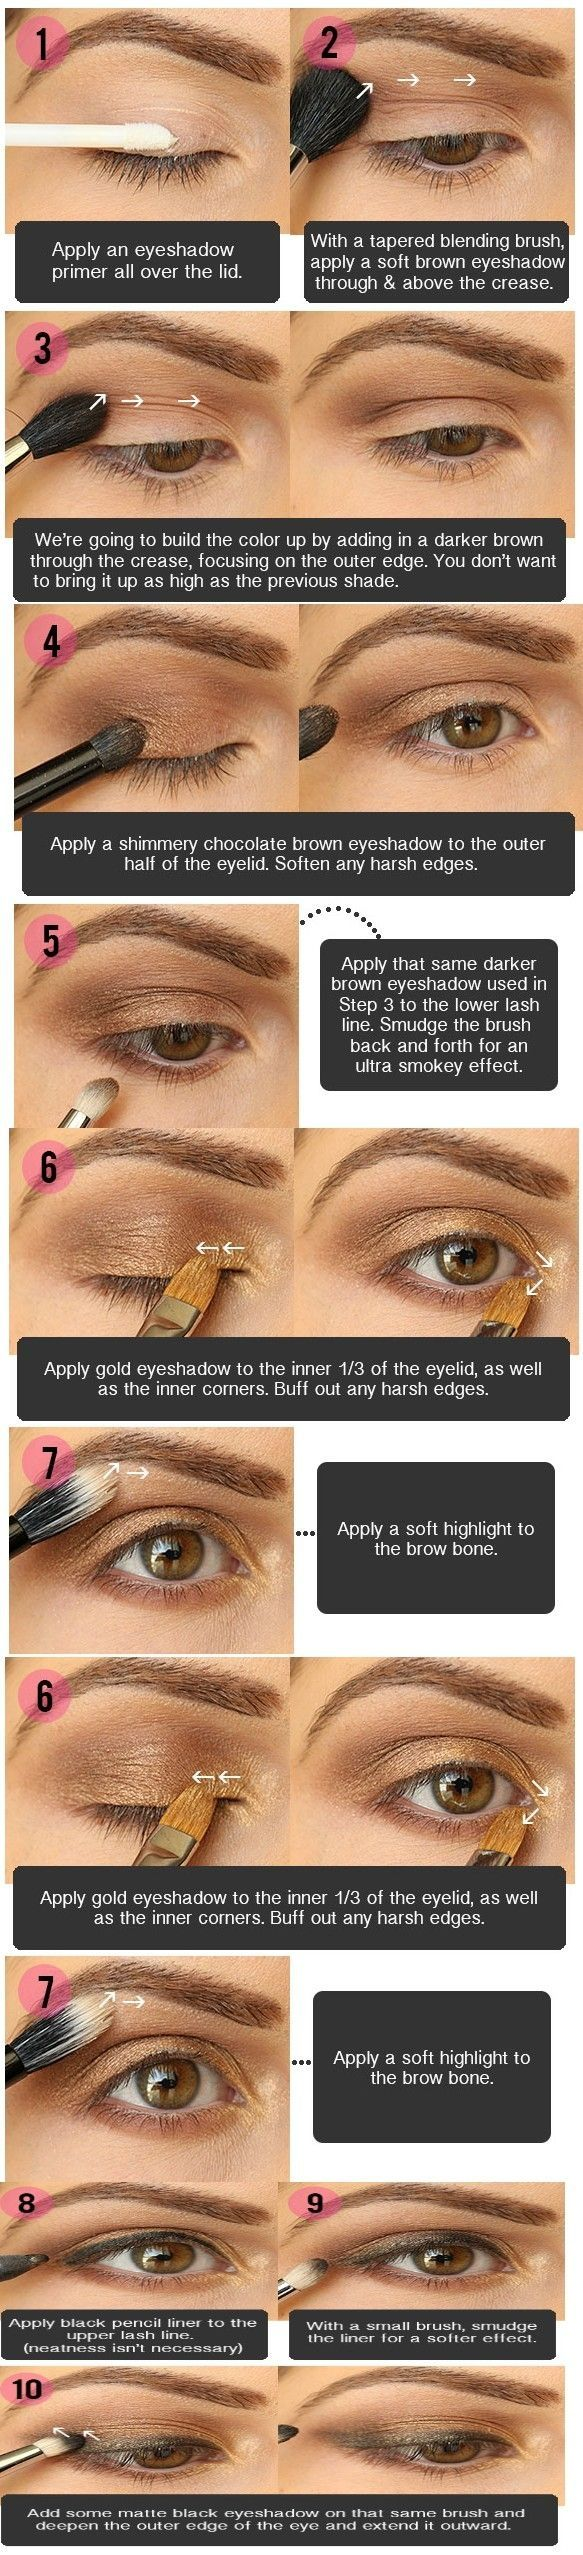 10 Tips Smokey Eye Makeup For Brown Eyes by debmcphail